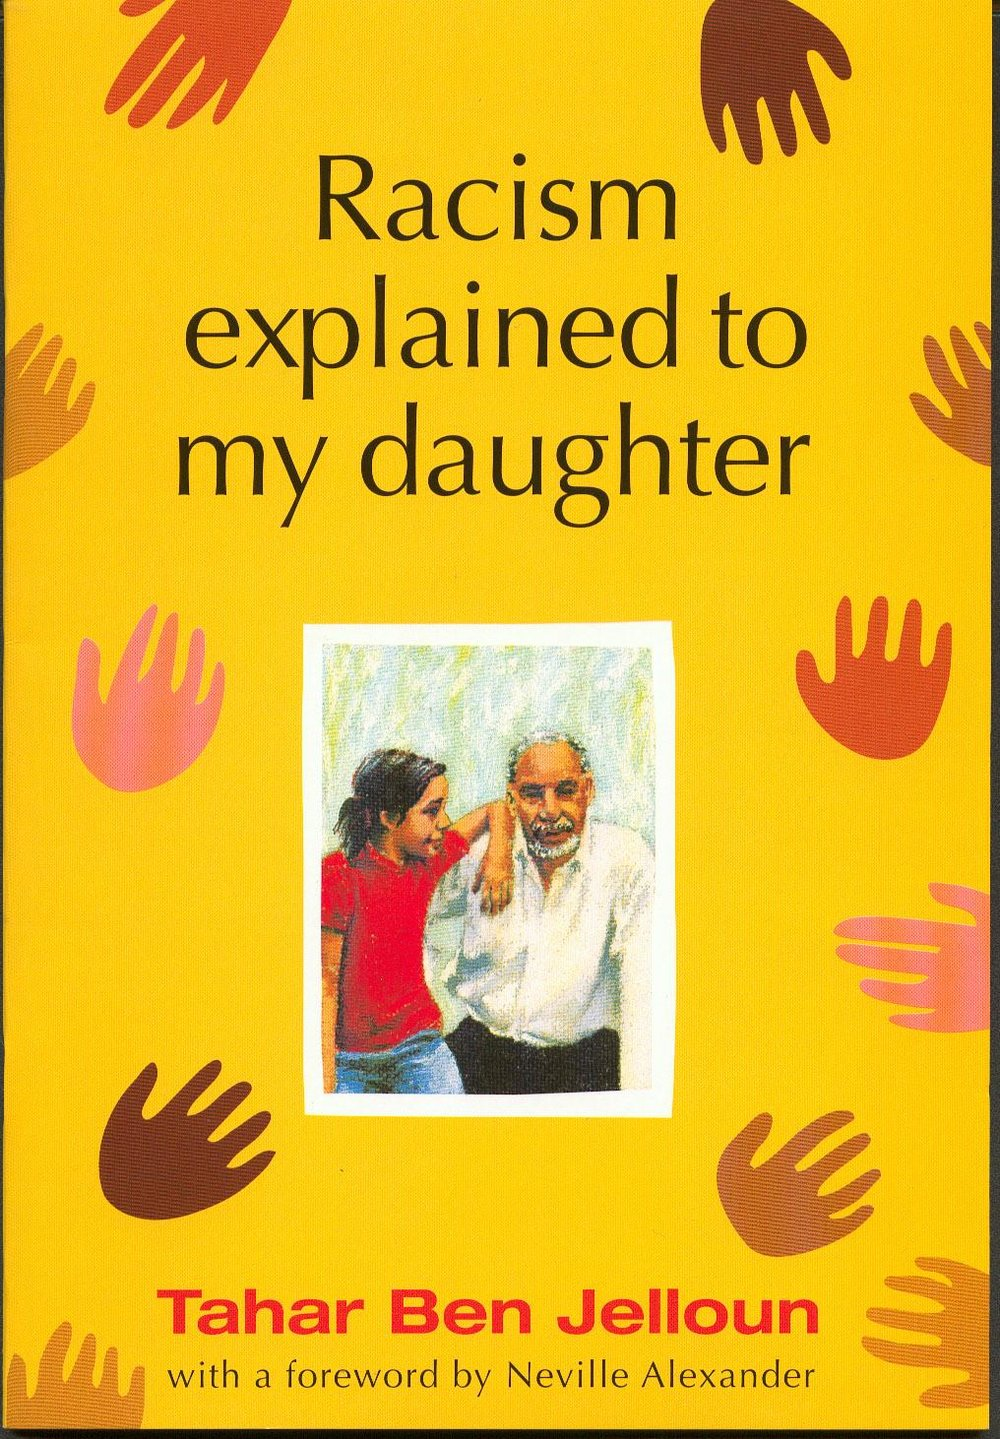 Racism Explained to my daughter - Tahar Ben Jelloun